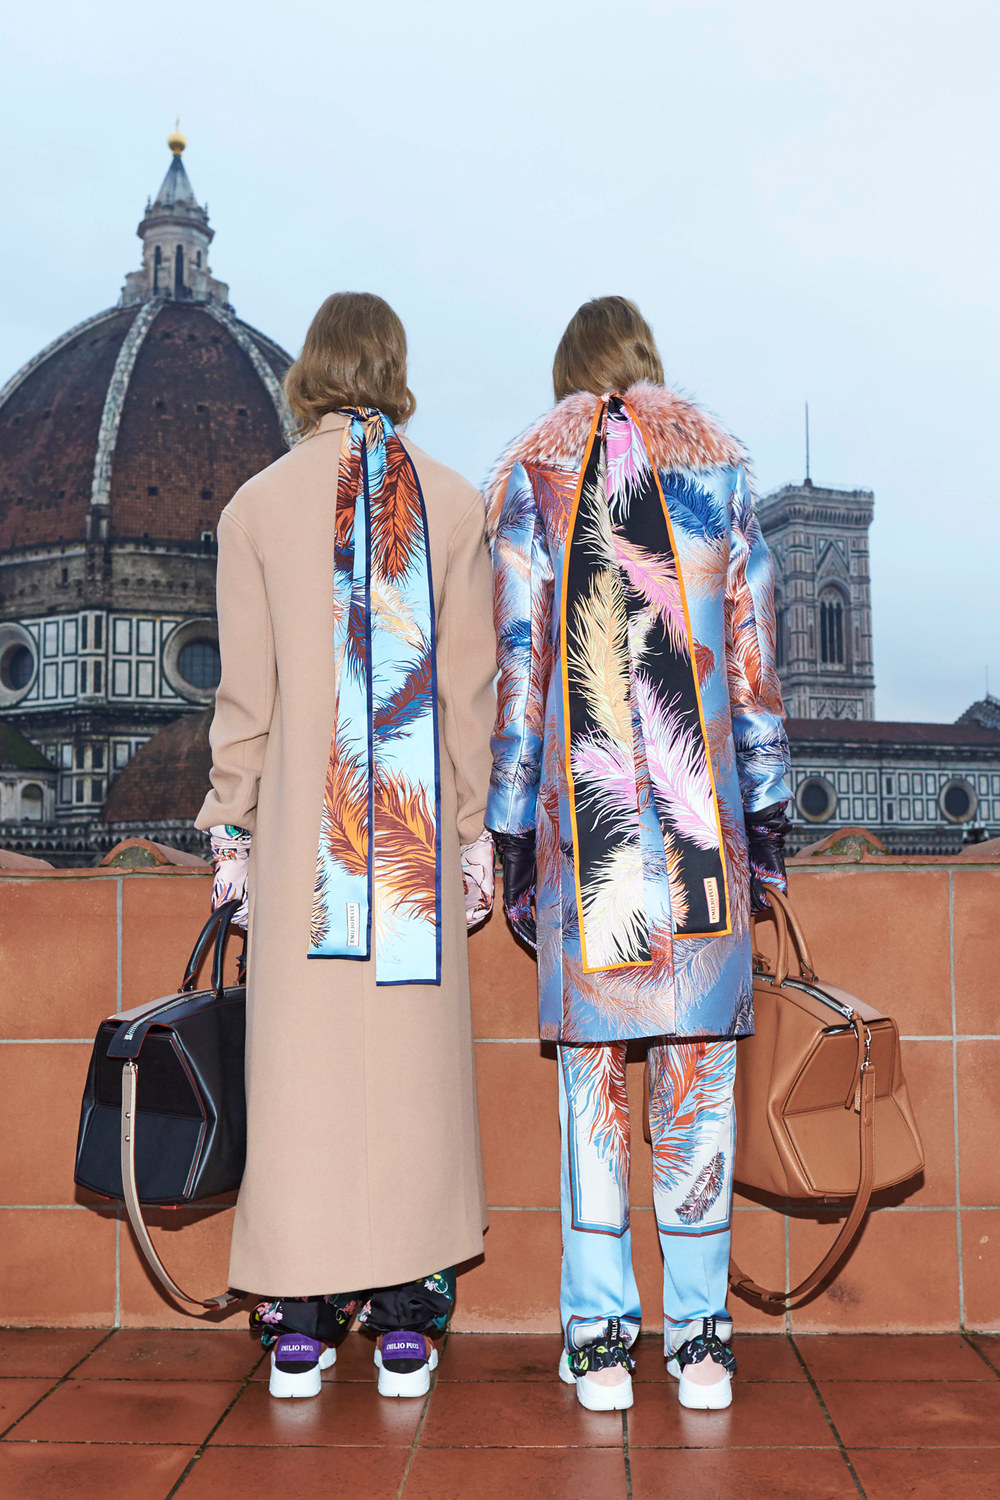 emilio-pucci-pre-fall-2016-lookbook-01.jpg